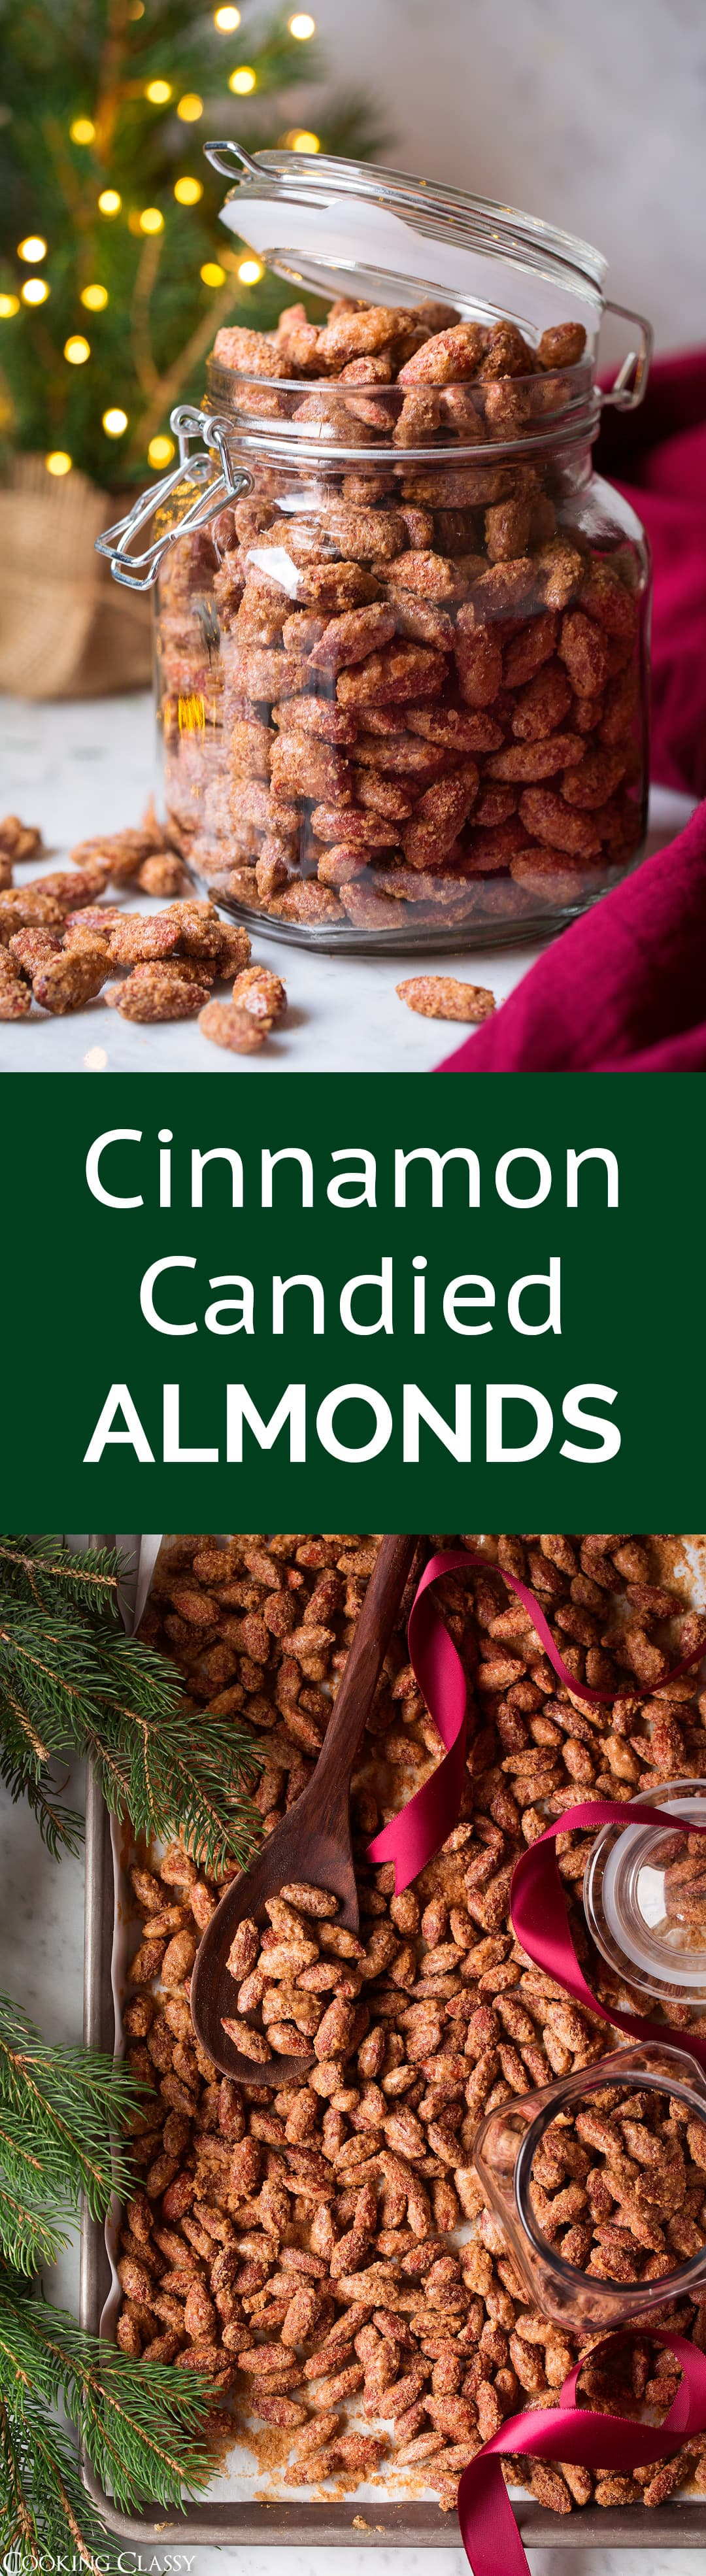 Cinnamon Candied Almonds - these are are one of the best holiday treats! I've been making these for years and once you try them you'll see why! #christmastreat #christmasgift #almonds #cinnamonalmonds #candiedalmonds